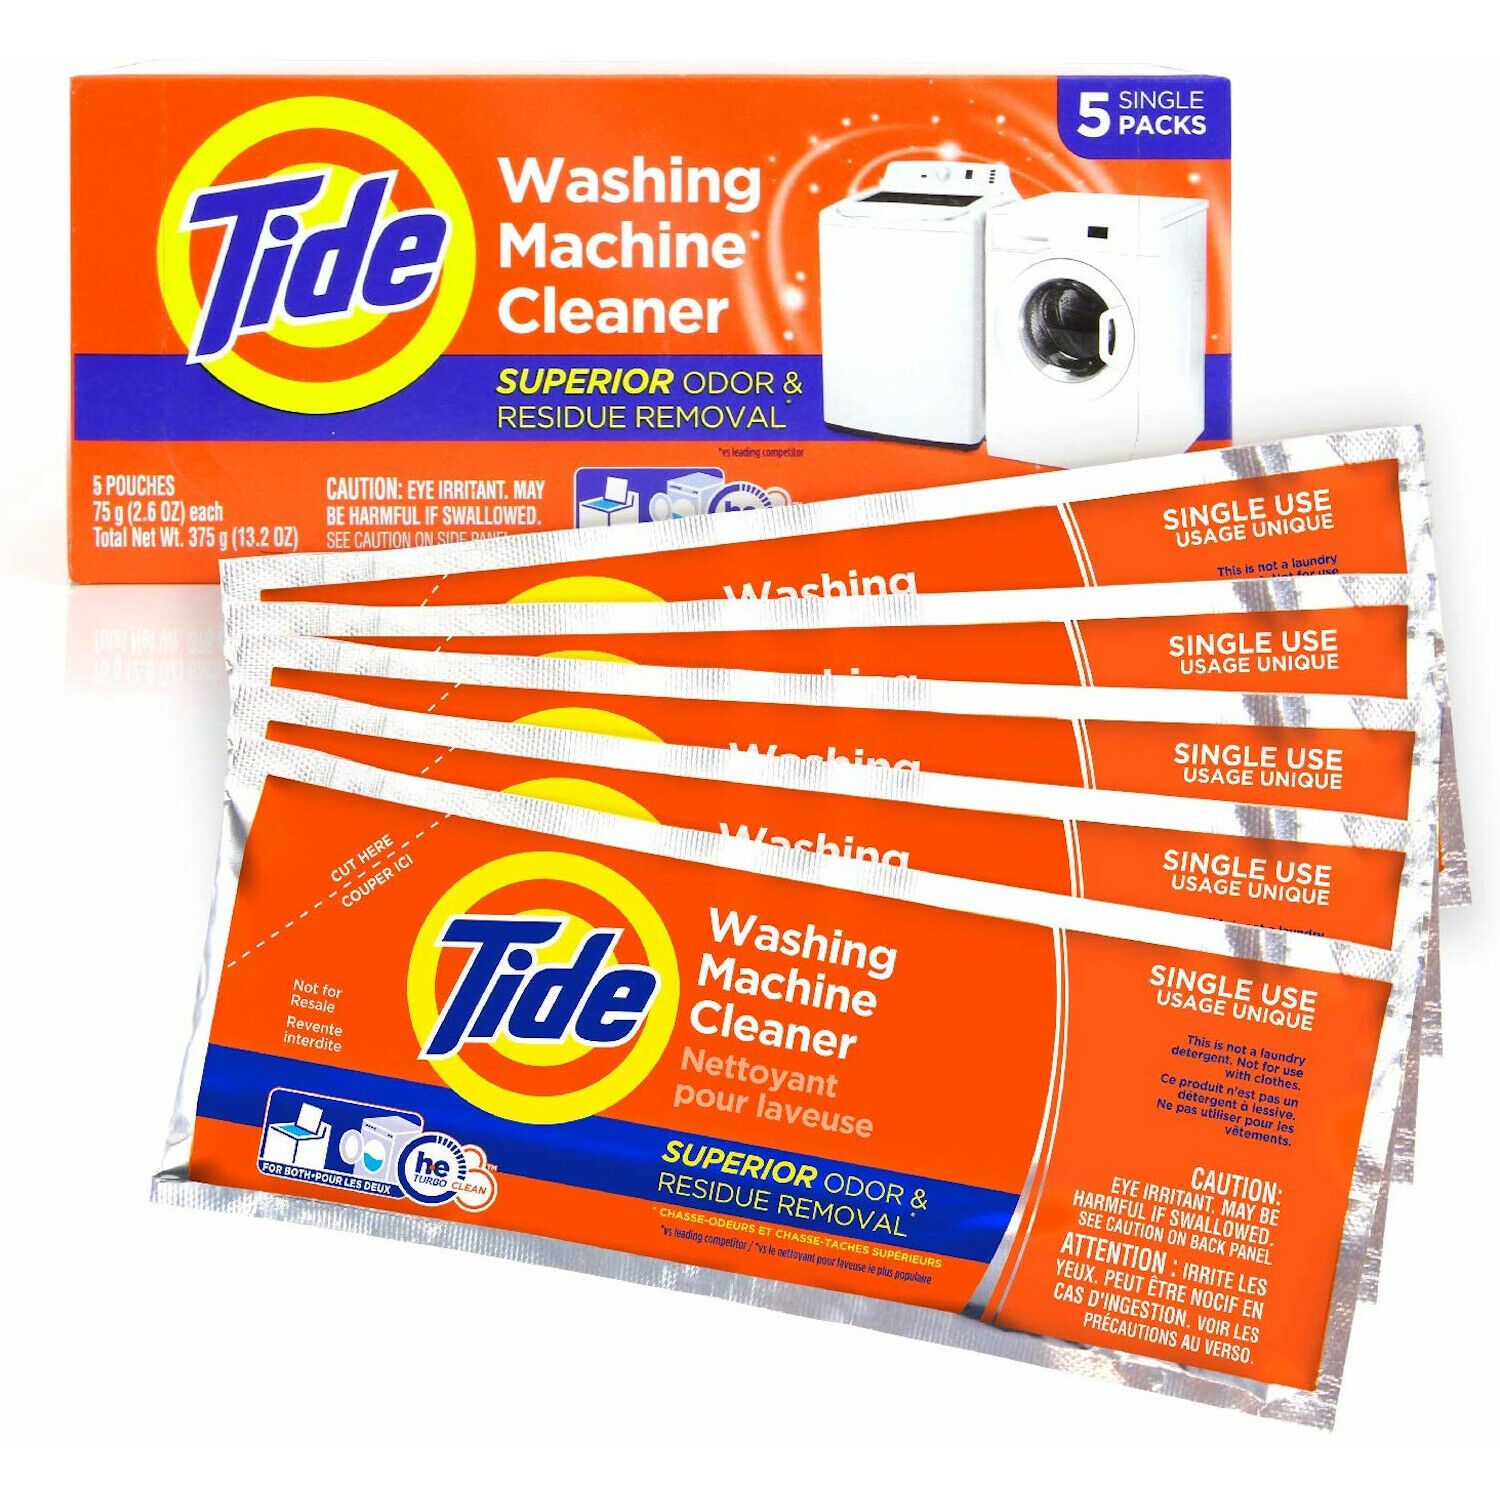 Washing Machine Residue Cleaner Tide Washer Cleaning Detergent Single Use 5 Pcs